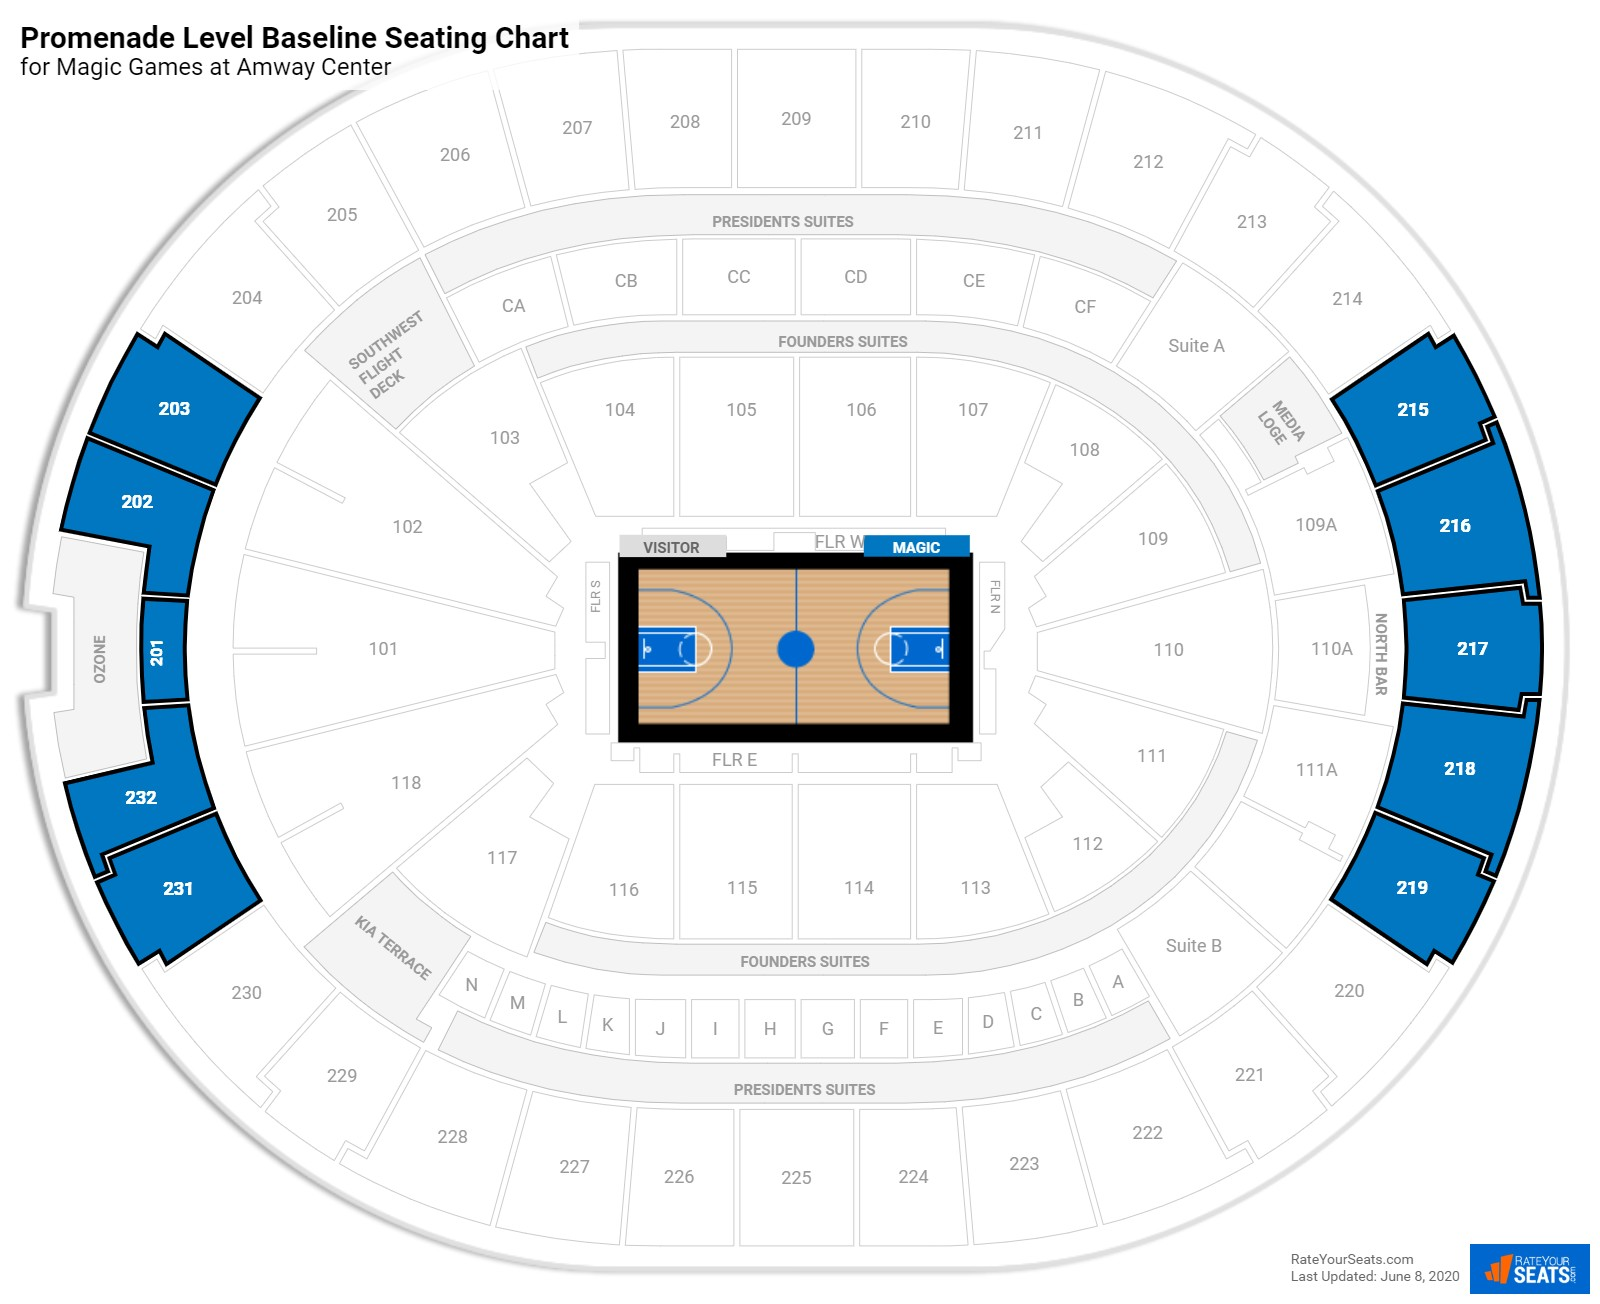 Amway Center Promenade Level Baseline seating chart